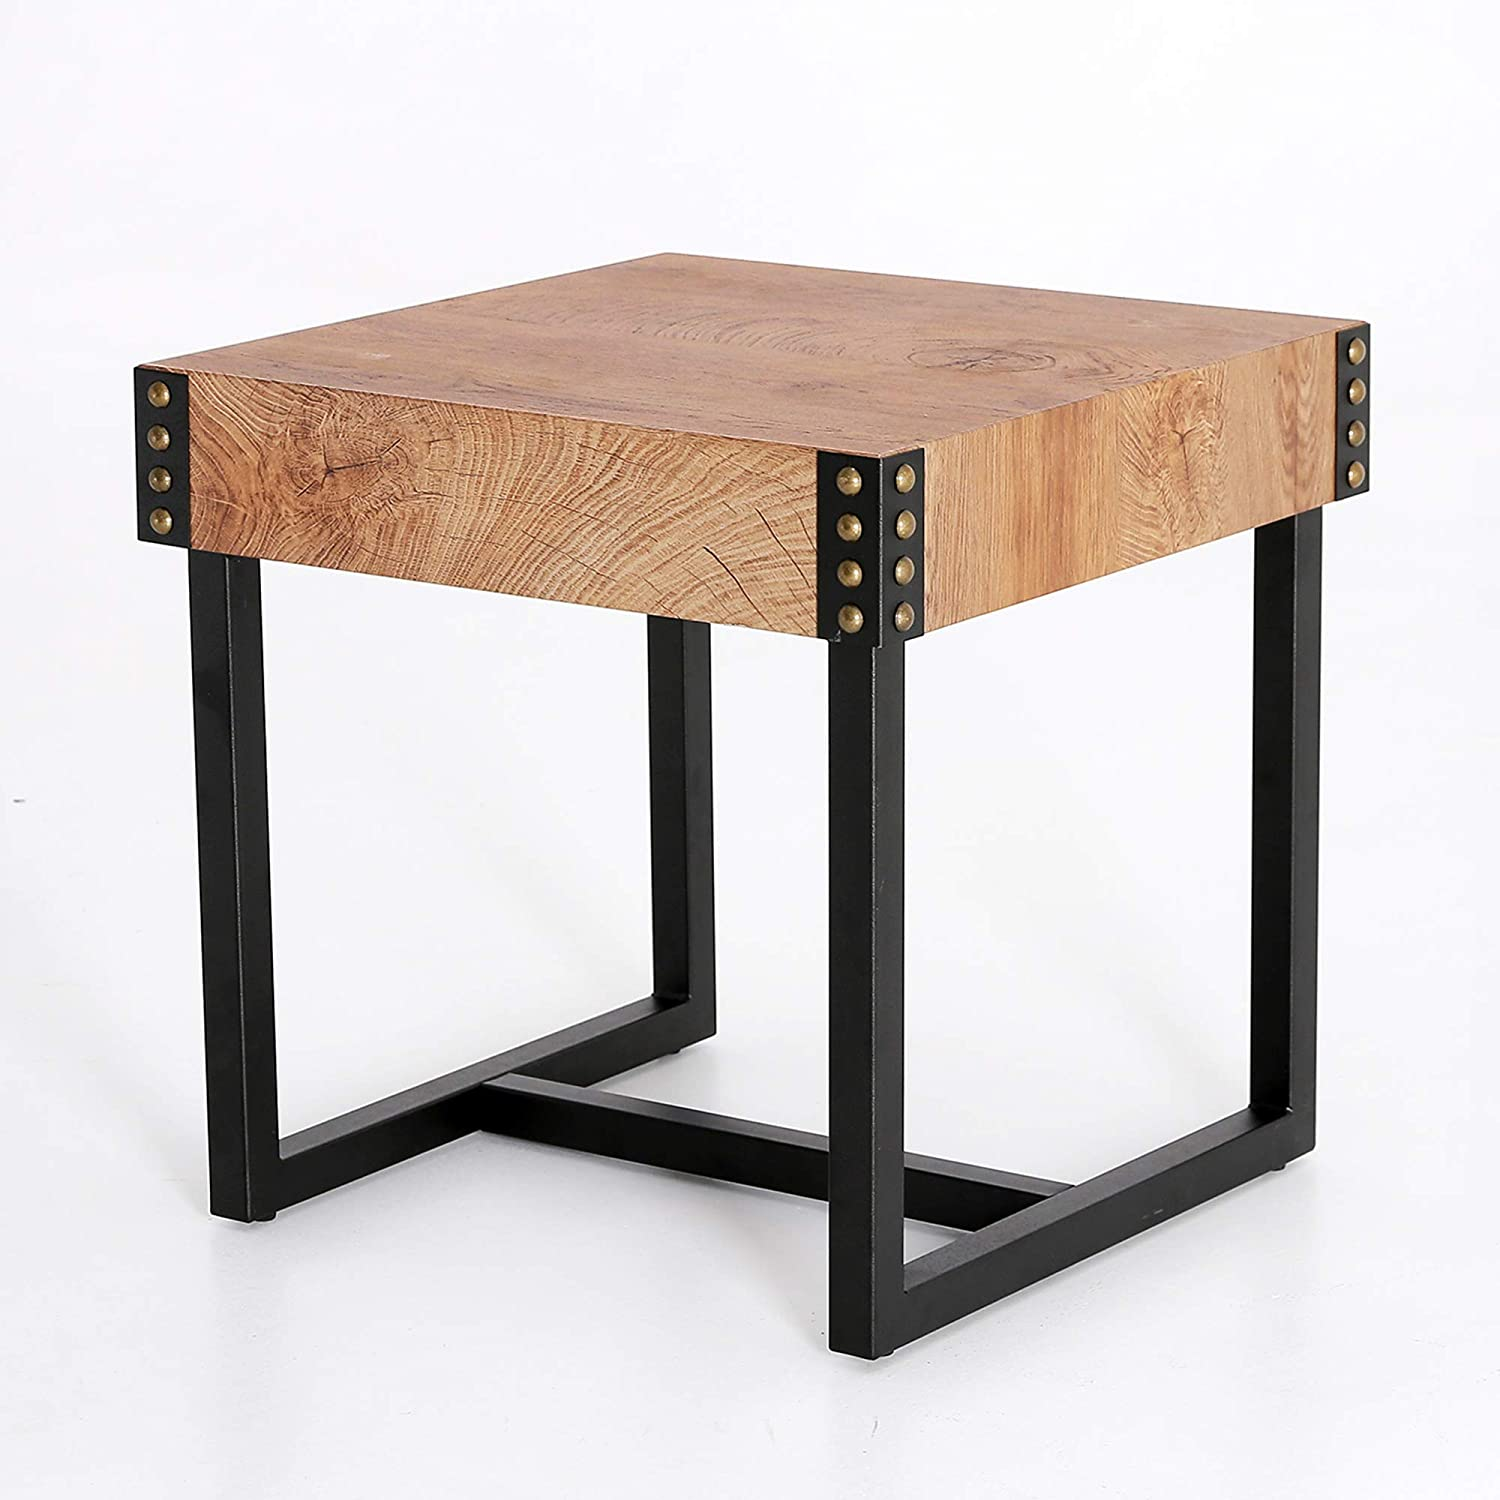 End Tables Side Table Night Table Rustic Modern Style with Thicker Table Top